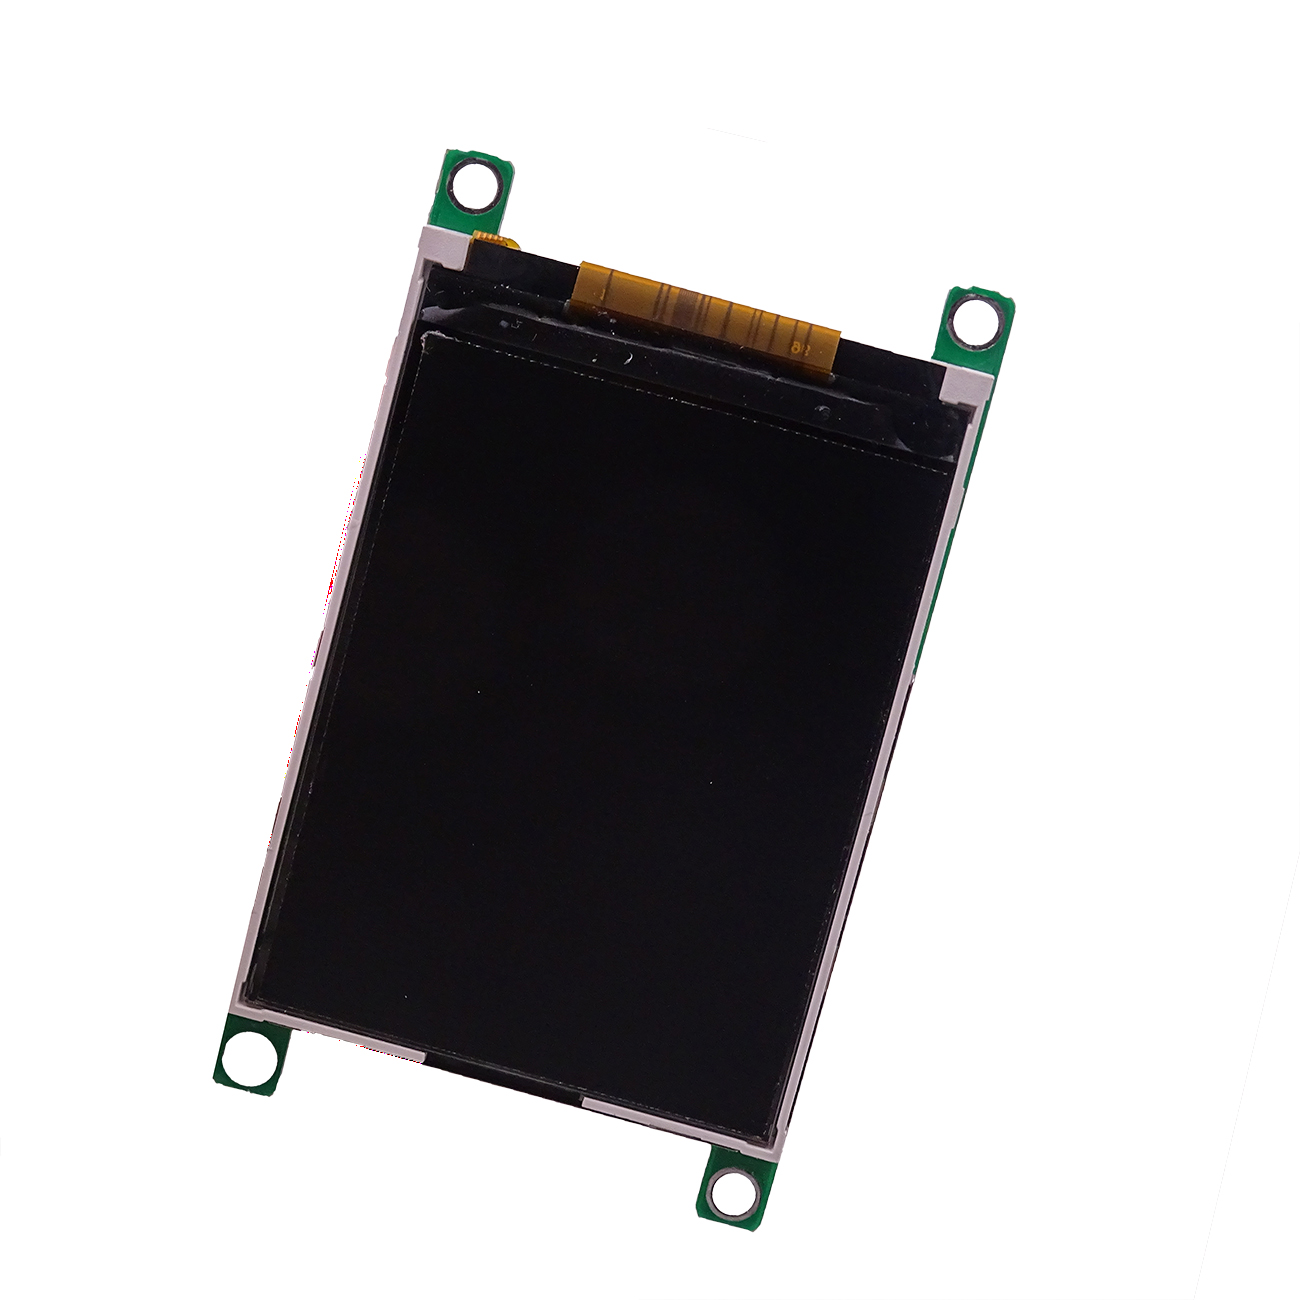 US $5 41 |2 4inch Smart USART UART Serial TFT LCD Module 320 240 with  positioning H hole zero code driver for Arduino without touch screen-in LCD